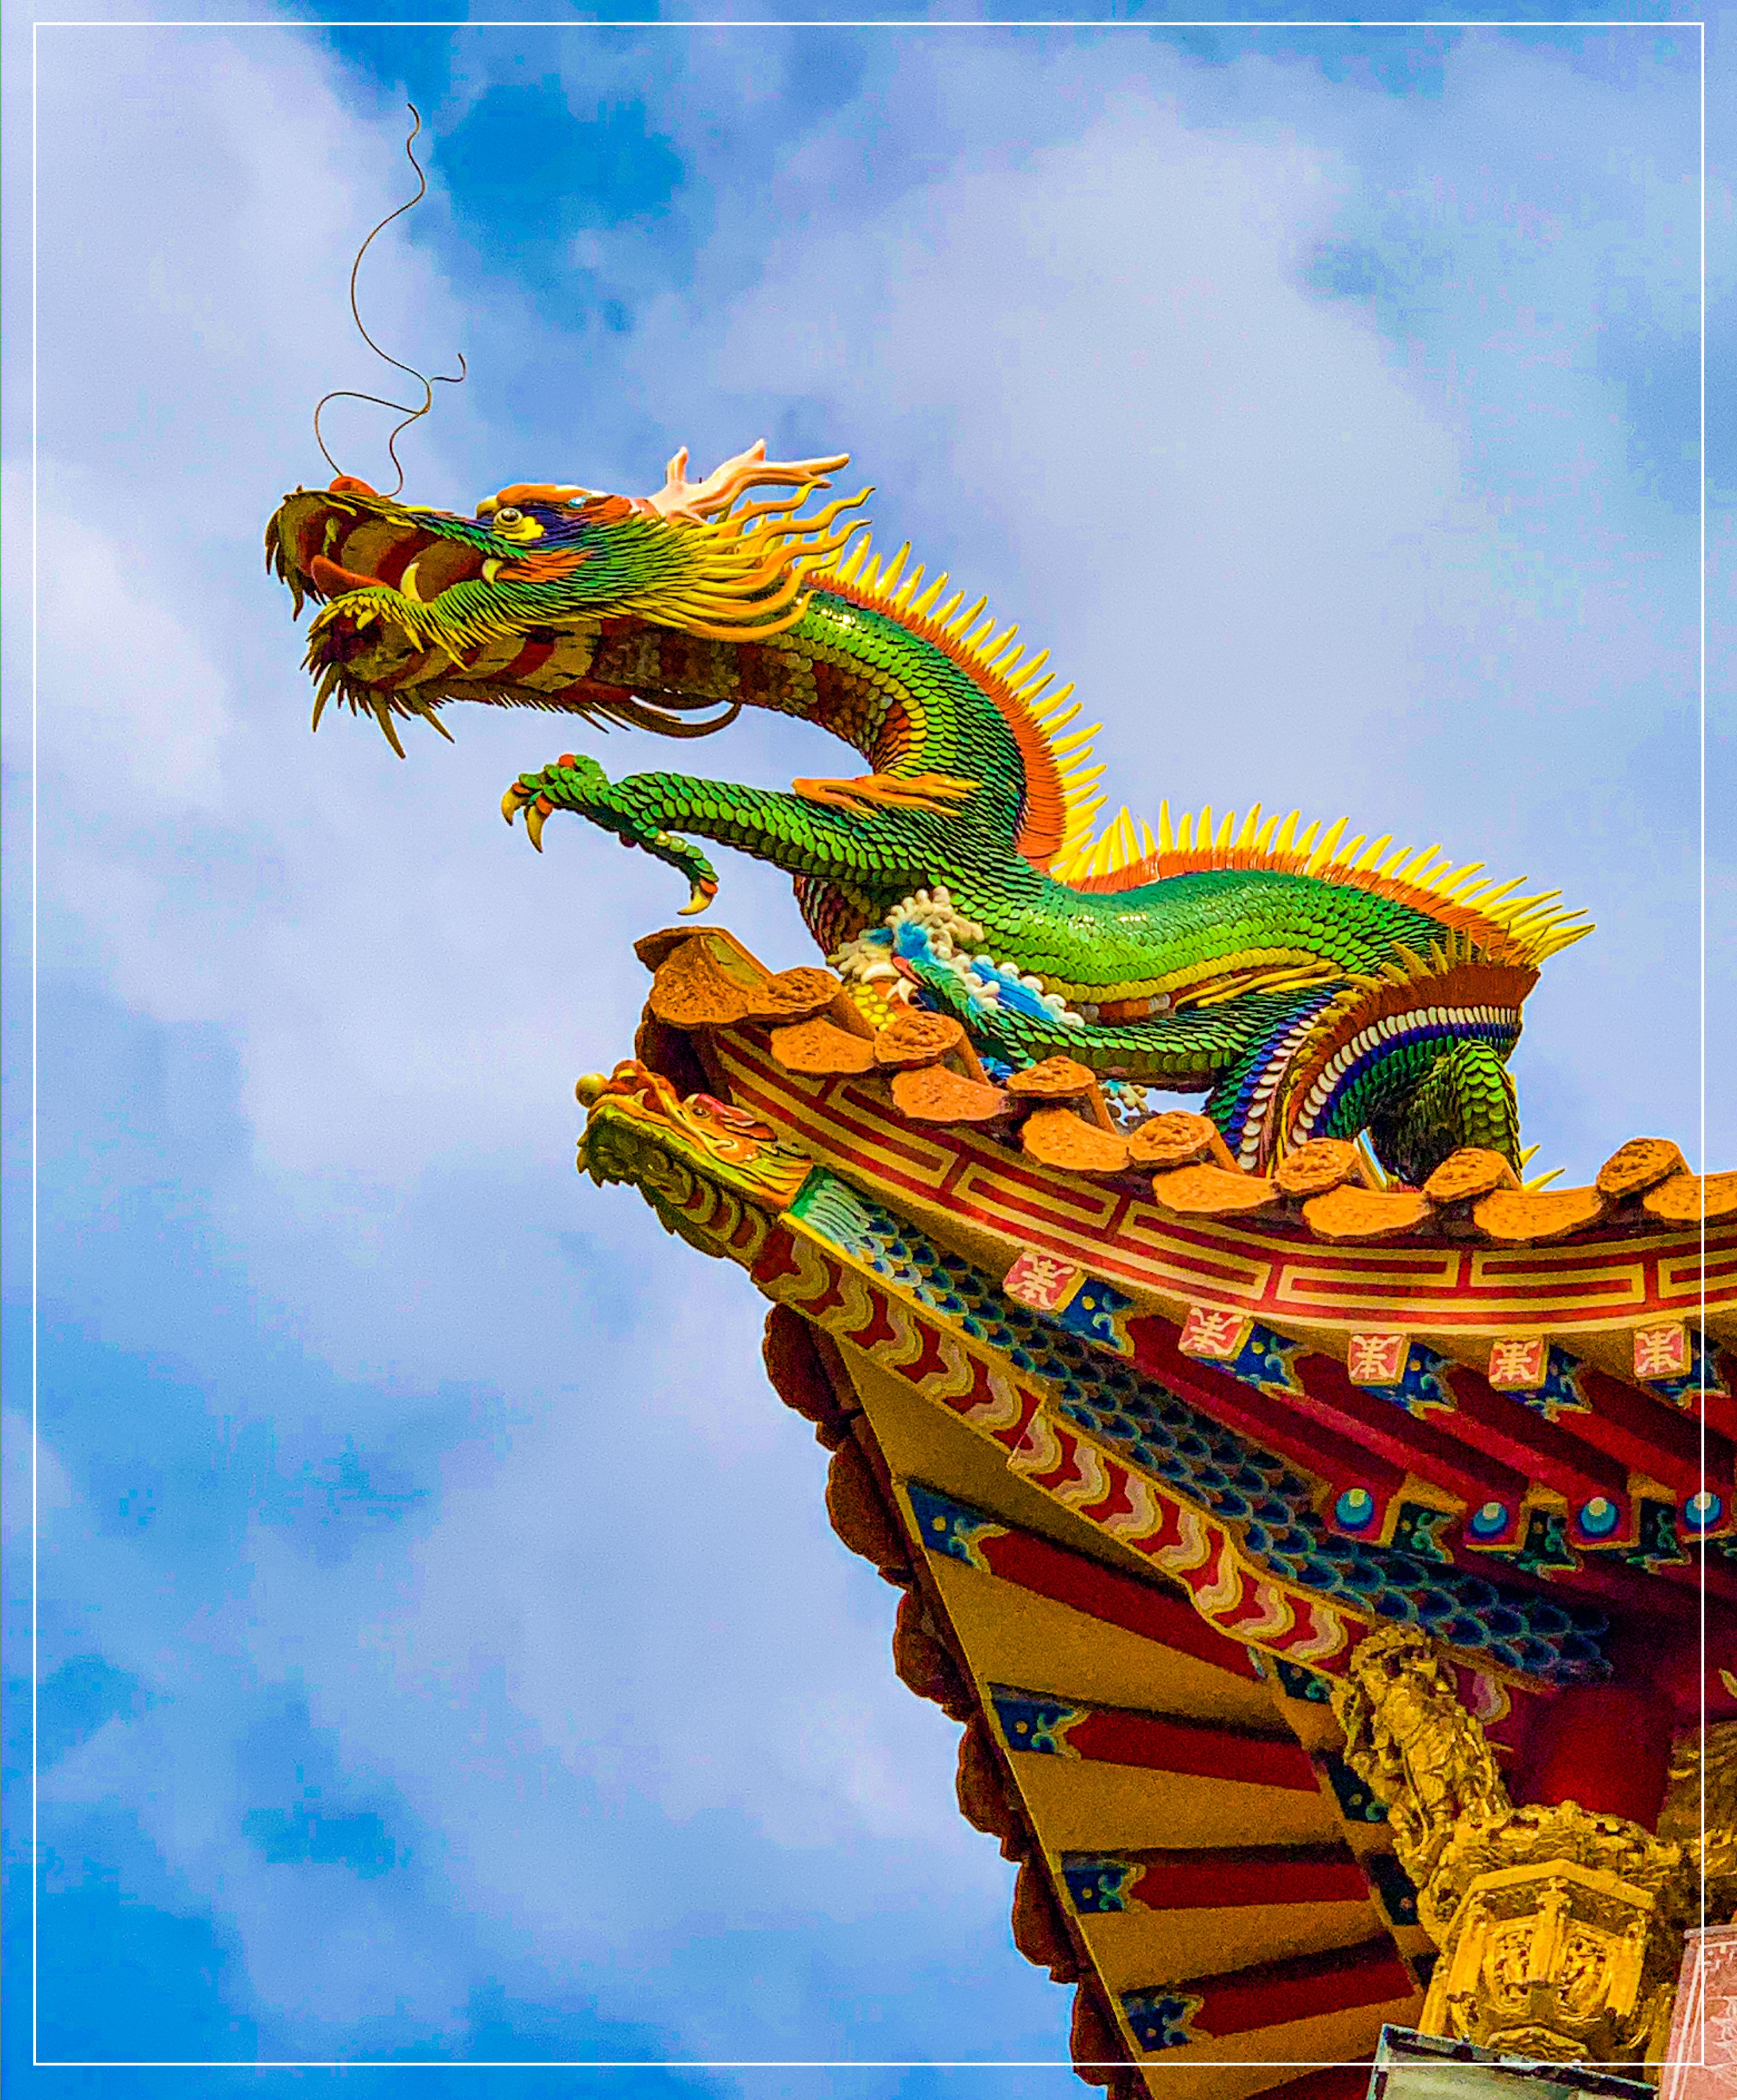 The Dragon of Taiwan drak taiwan tainanjpg